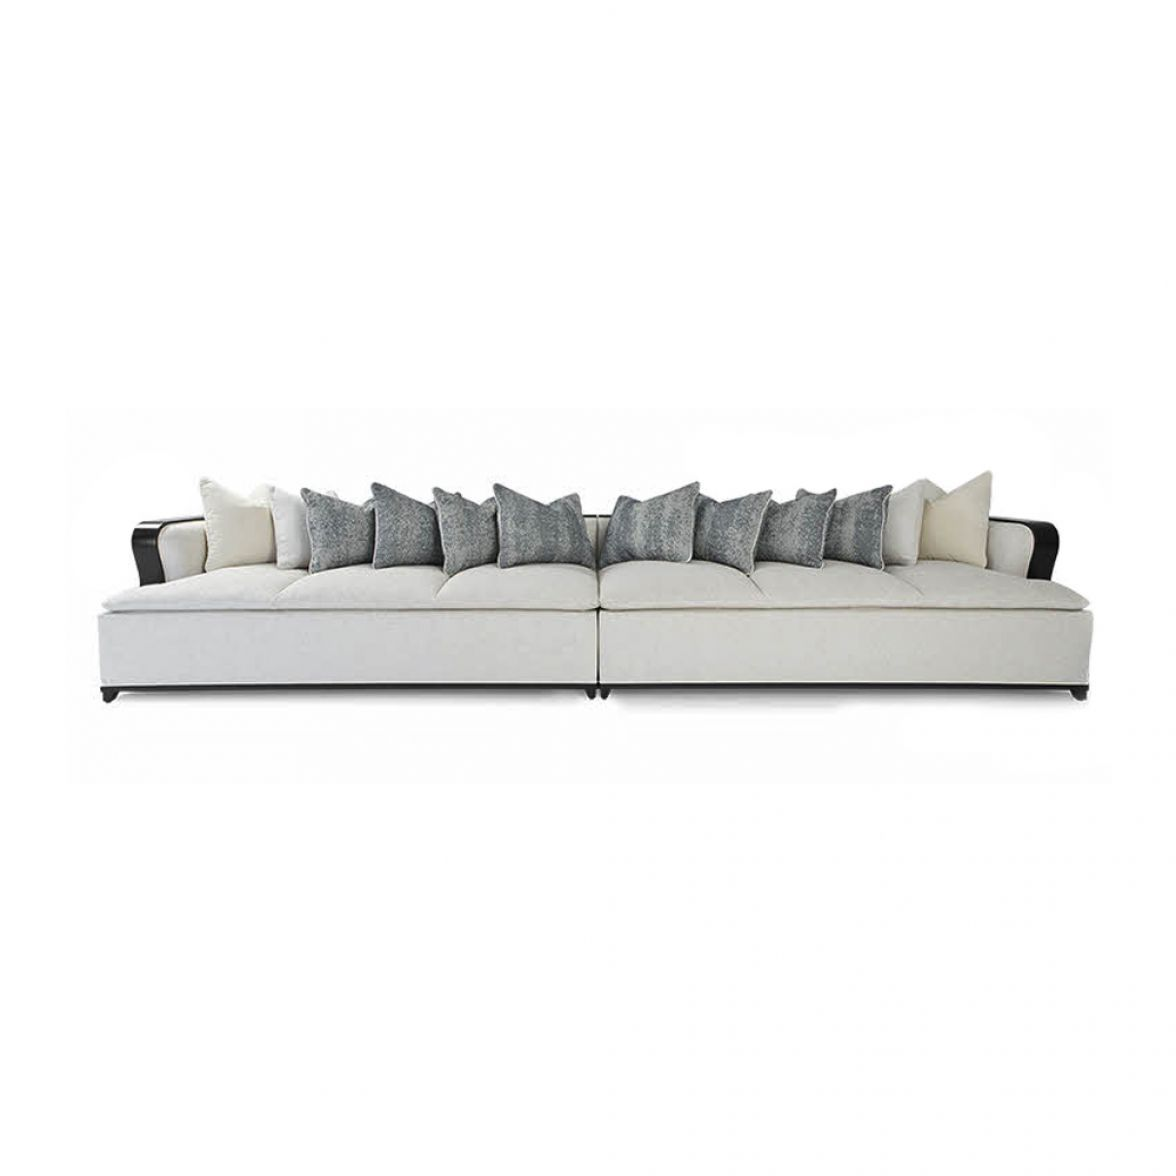 THE HEPBURN sofa